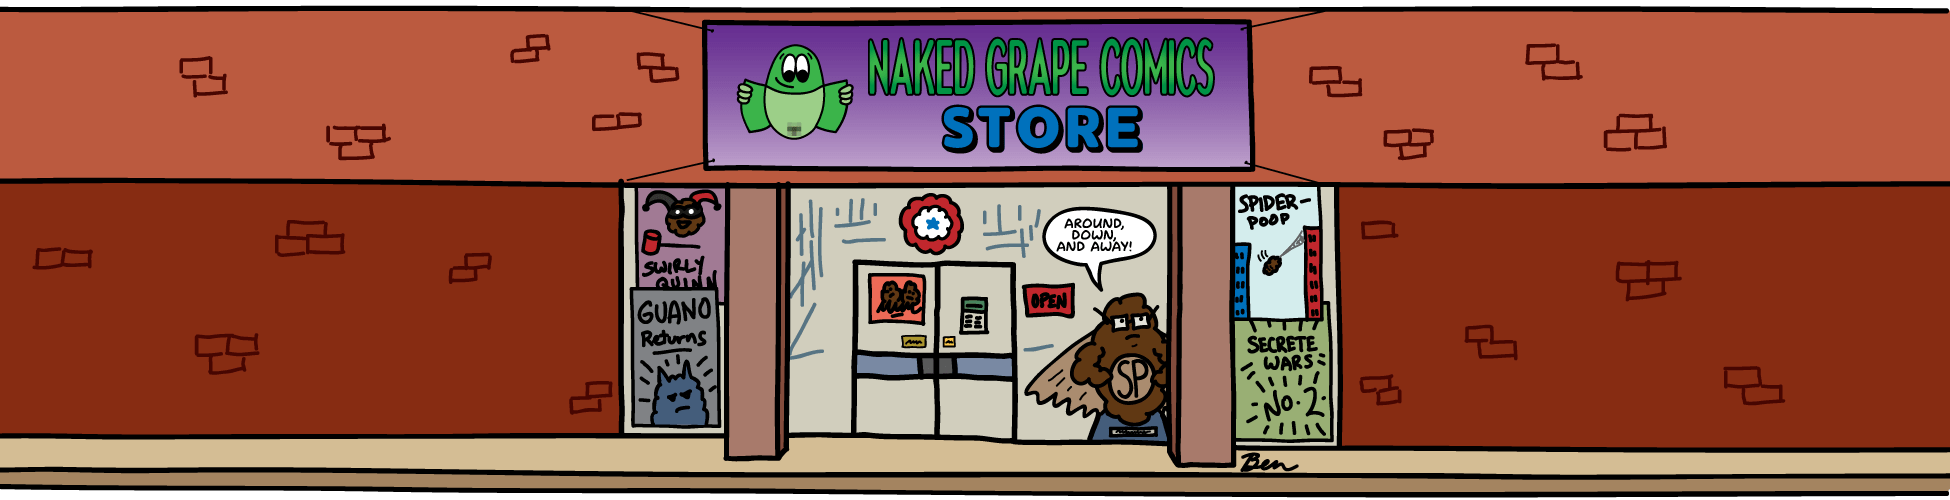 Naked Grape Comics Store